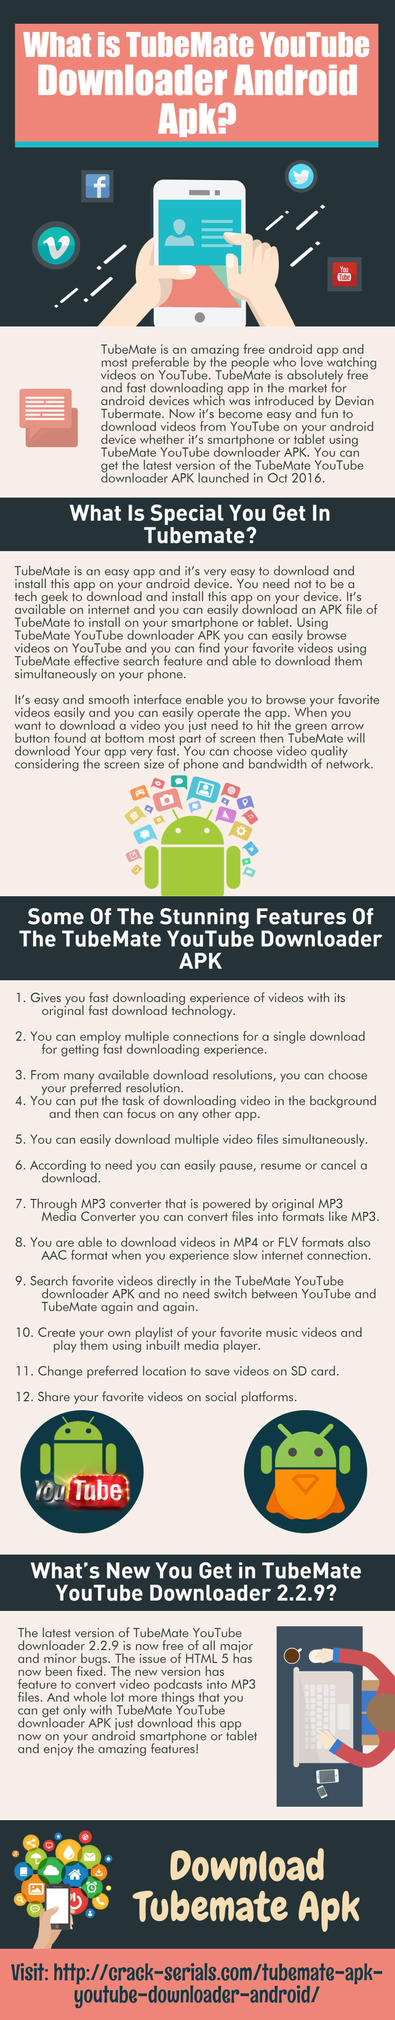 What Is Tubemate Youtube Downloader Android Apk By Hoggkevin On